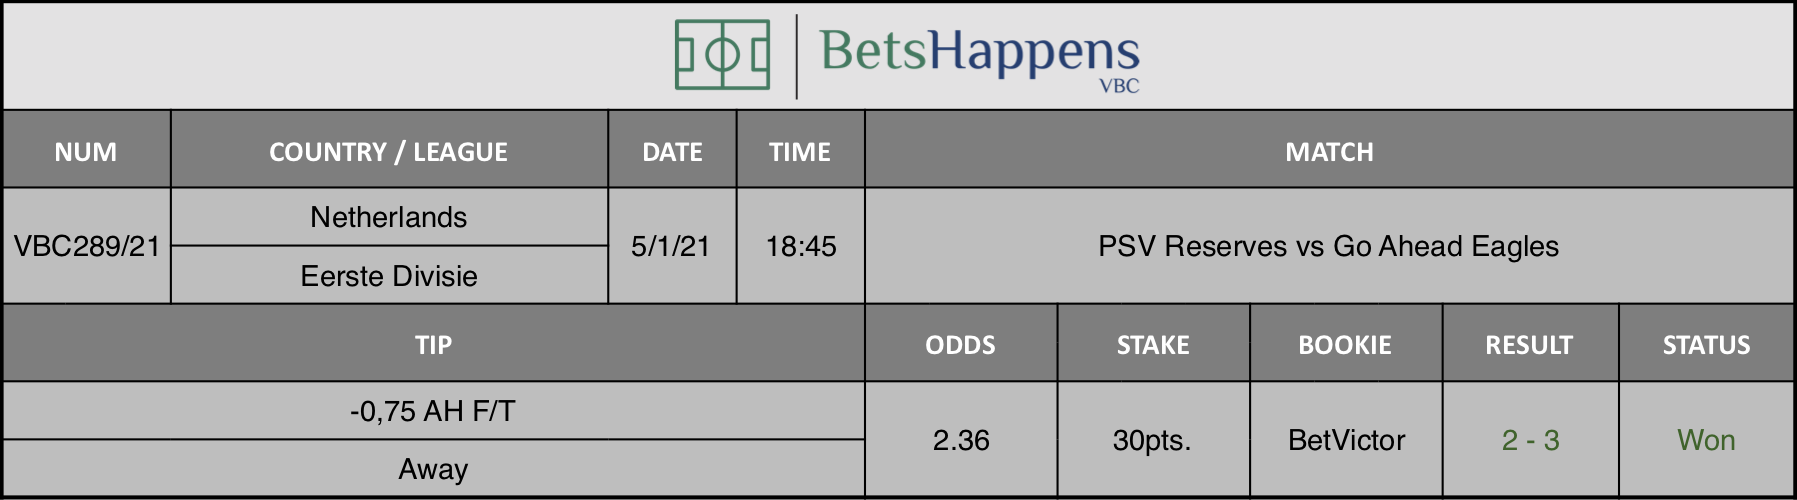 Results of our tip for the PSV Reserves vs Go Ahead Eagles match where -0,75 AH F/T Away is recommended.